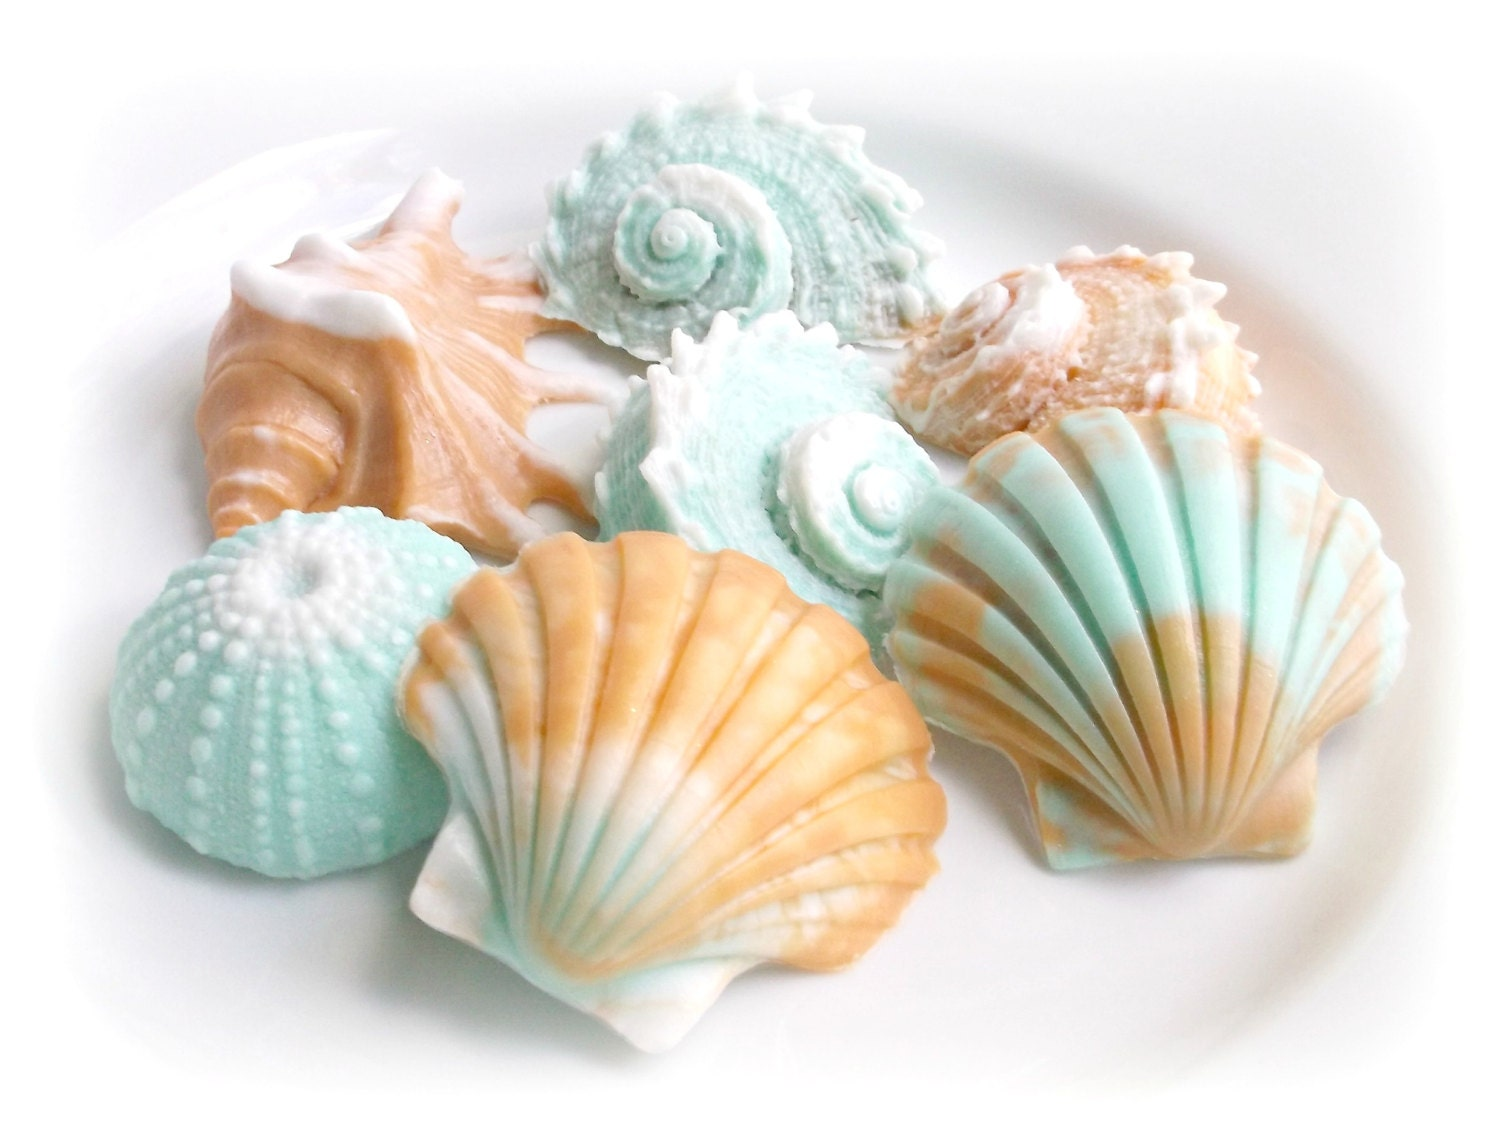 Decorative Soap Gift Sea Shell Soap Gift Set Beach House. Wall Units For Living Rooms. Chevron Office Decor. How To Become An Interior Decorator. Decorations For Party. Laser Cut Decorative Metal Panels. Custom Laundry Room. Waiting Room Decor. Living Room Furniture Layout Ideas